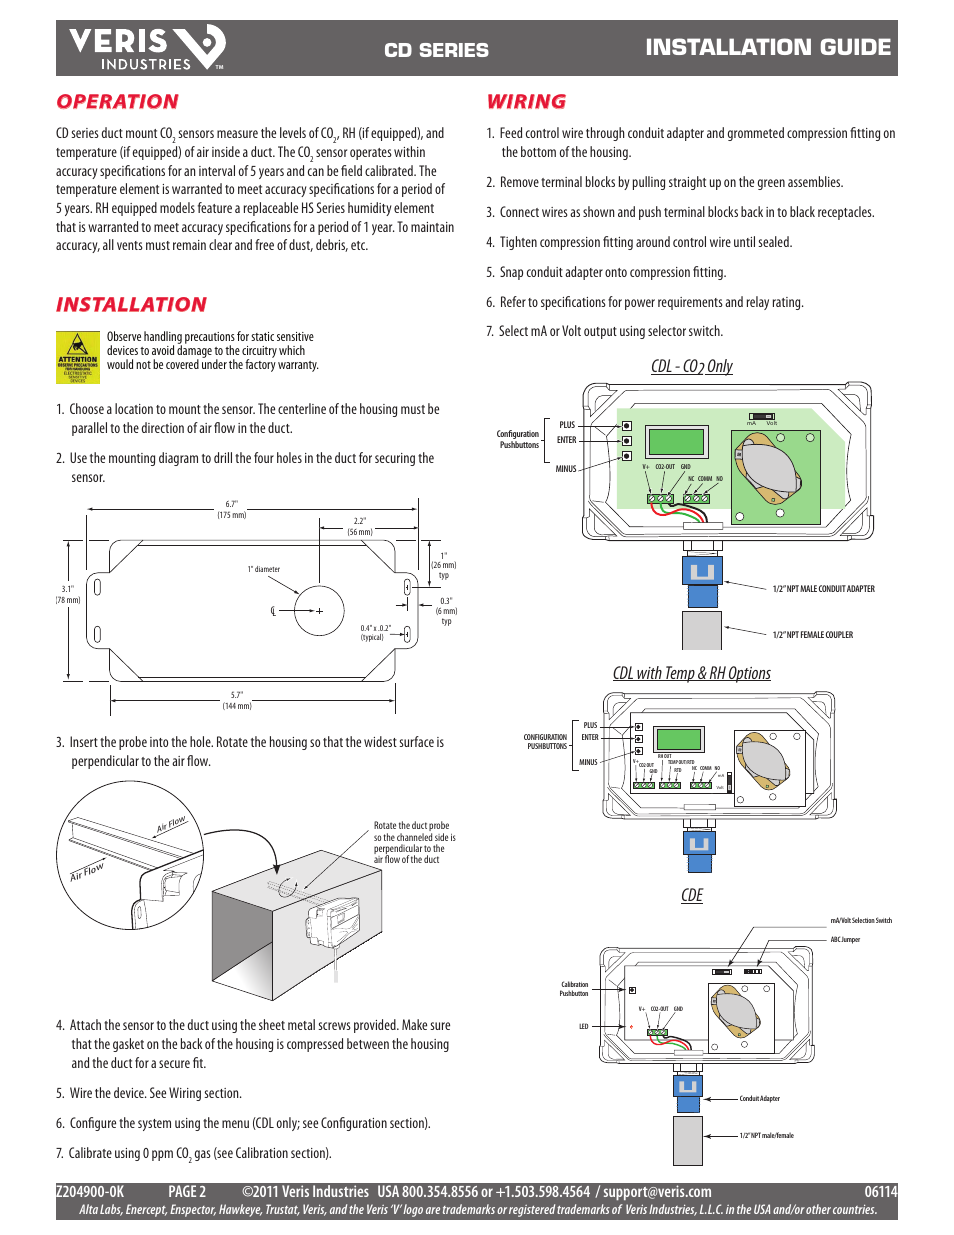 Installation Guide Wiring Veris Industries Cd Surface Conduit Series Install User Manual Page 2 5